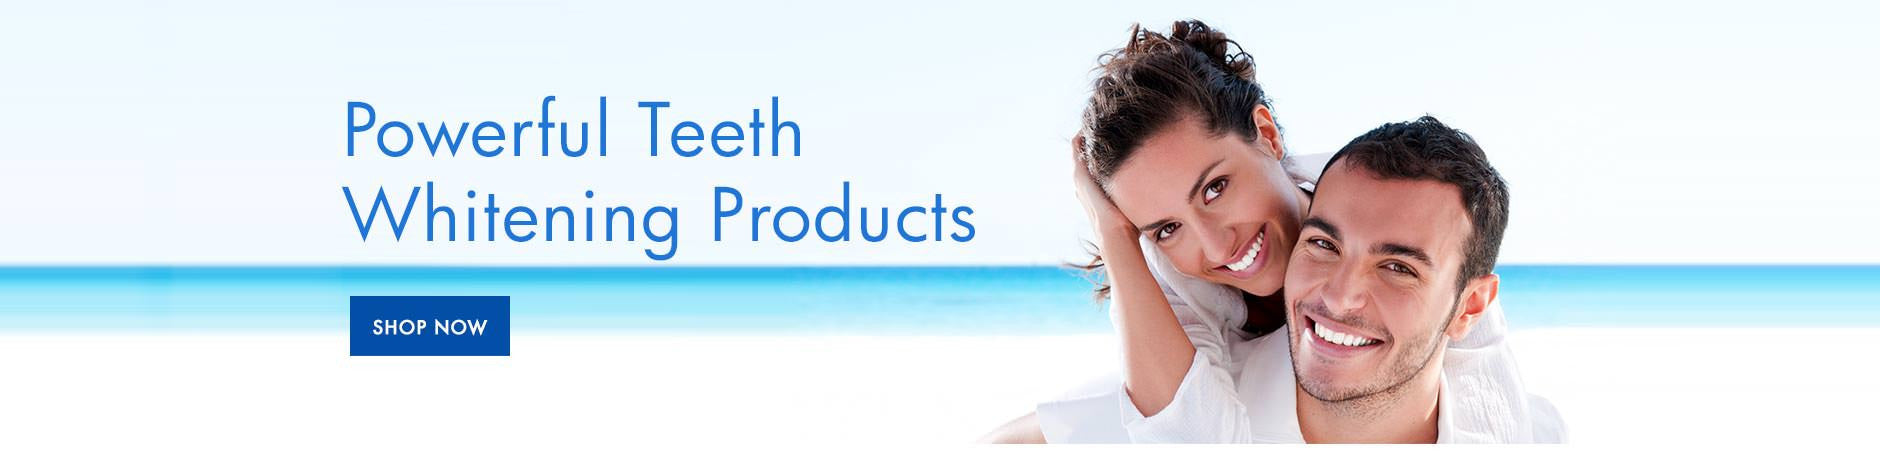 LED teeth whitening products